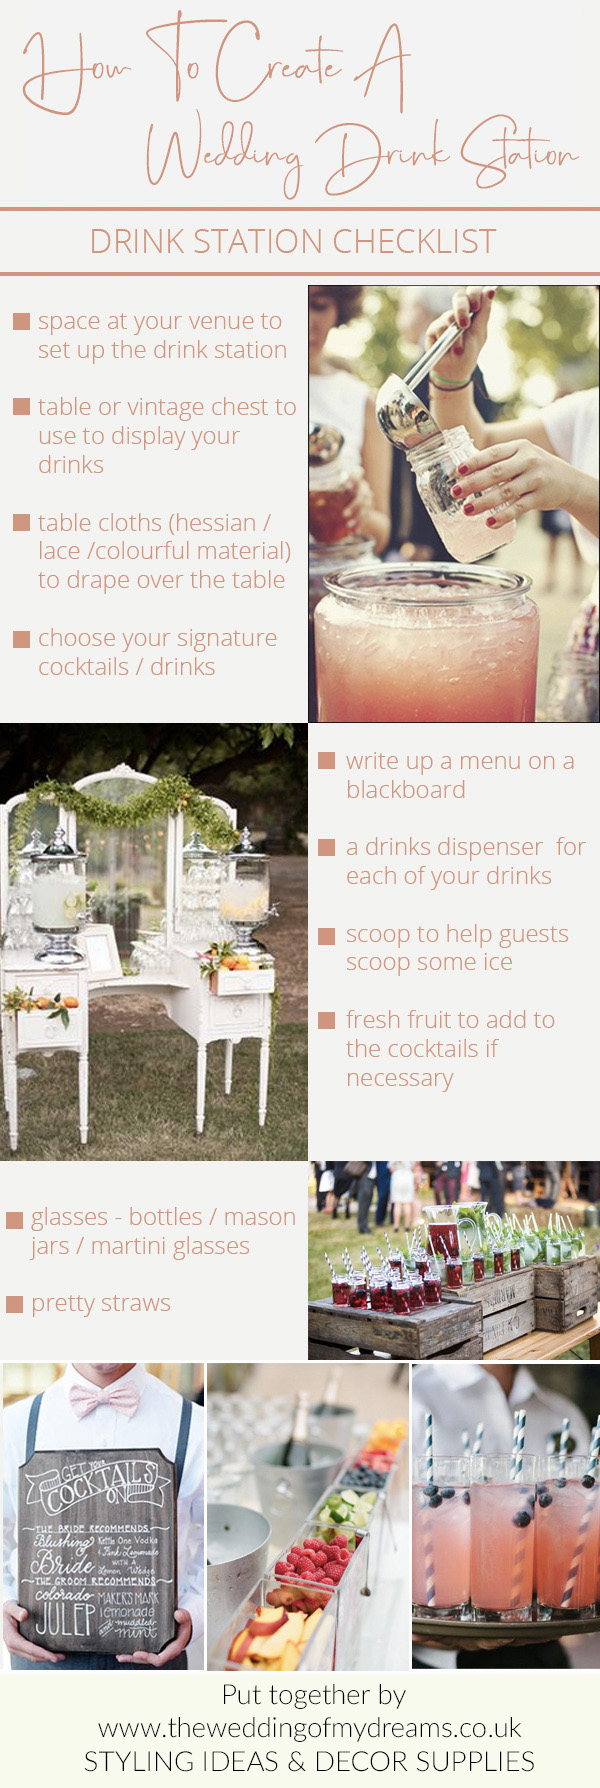 how to create a drink station checklist